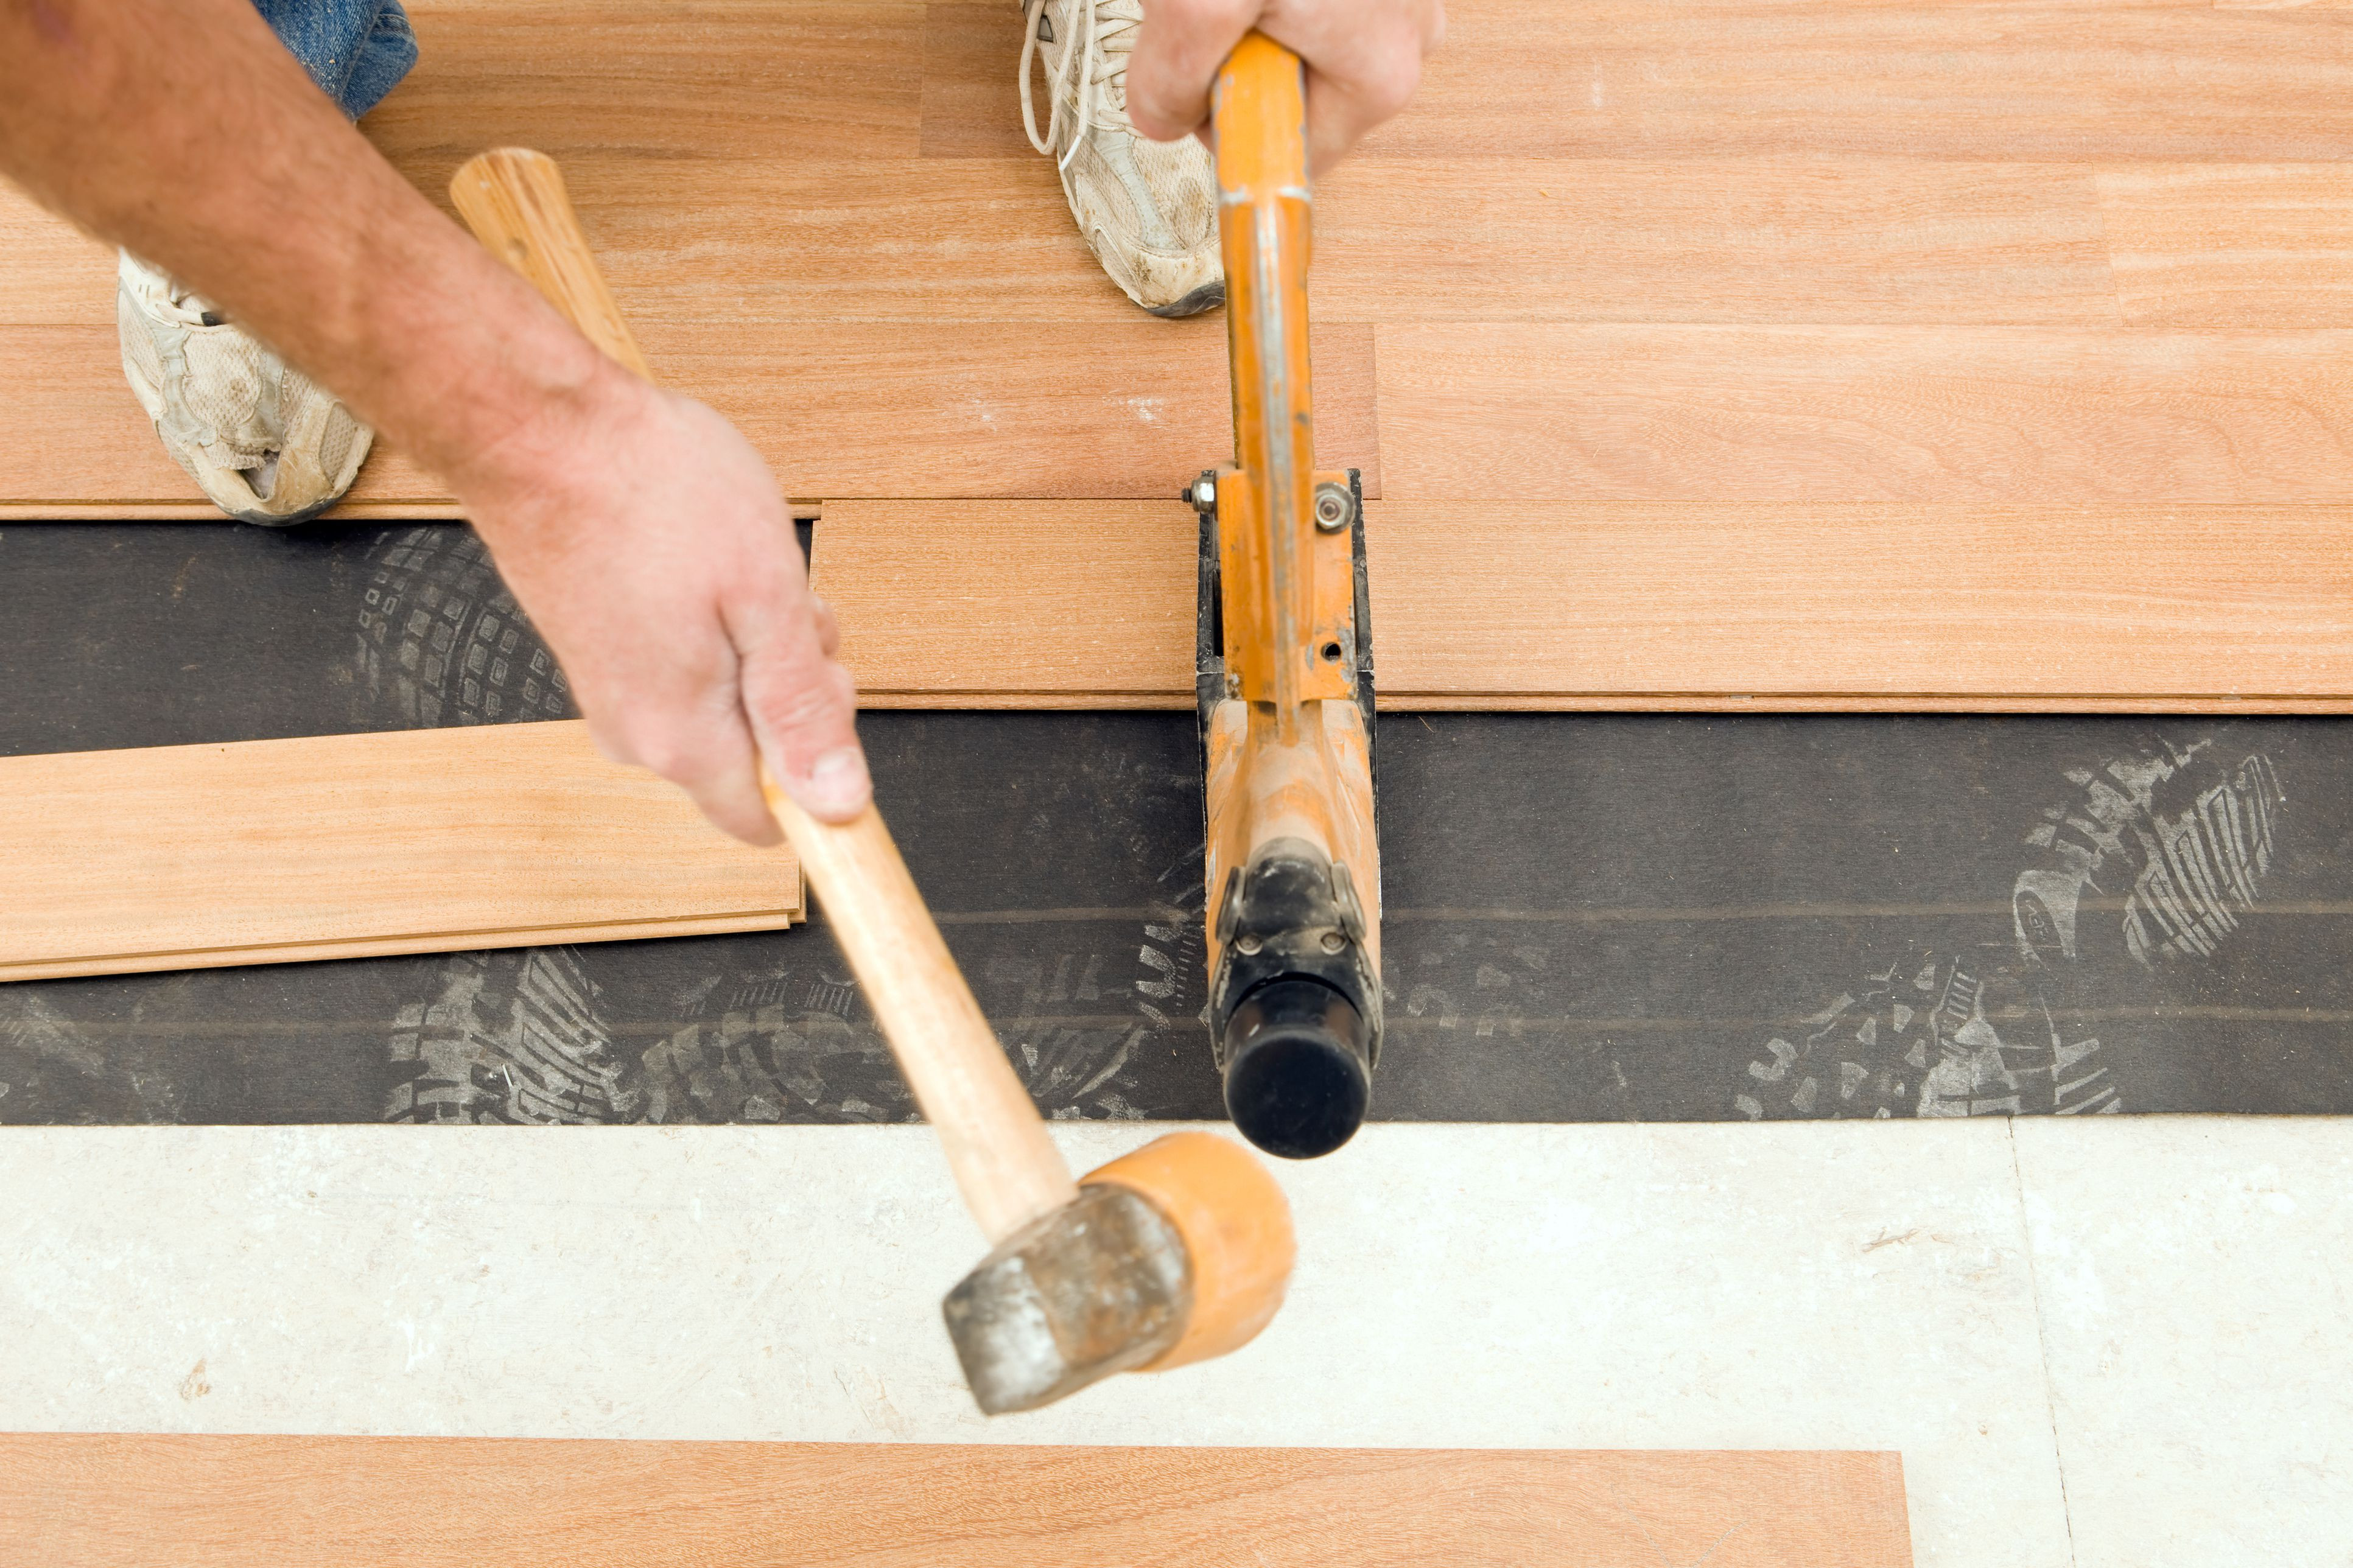 ash hardwood flooring pros and cons of the hardest wood flooring you can buy intended for worker installing new cumuru hardwood floor 186852280 5827f3bc5f9b58d5b11372fc